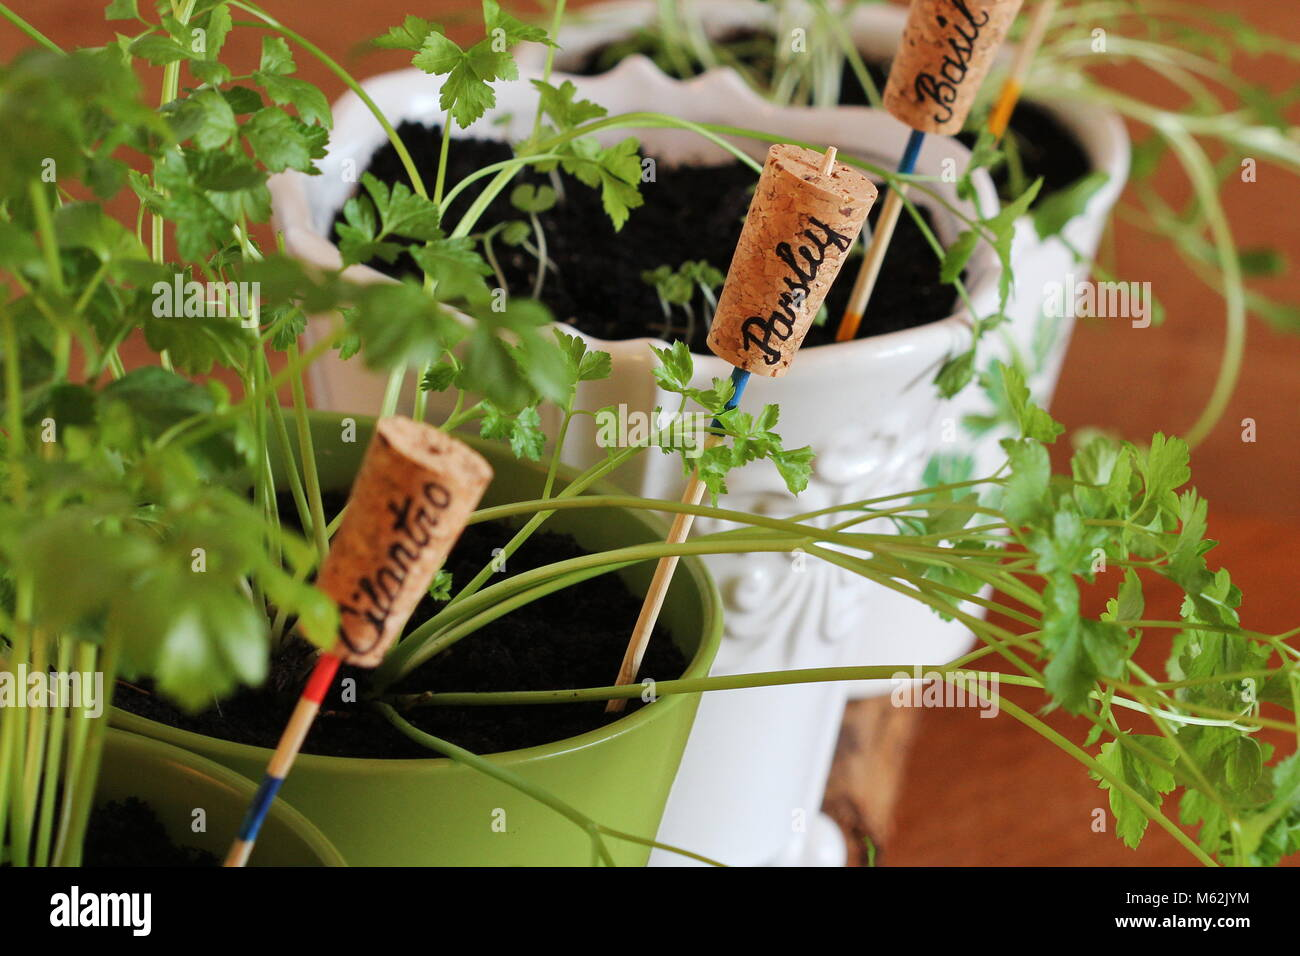 Plant Markers For Springtime Garden. Herbs Growing In Pots On Windowsill    Stock Image